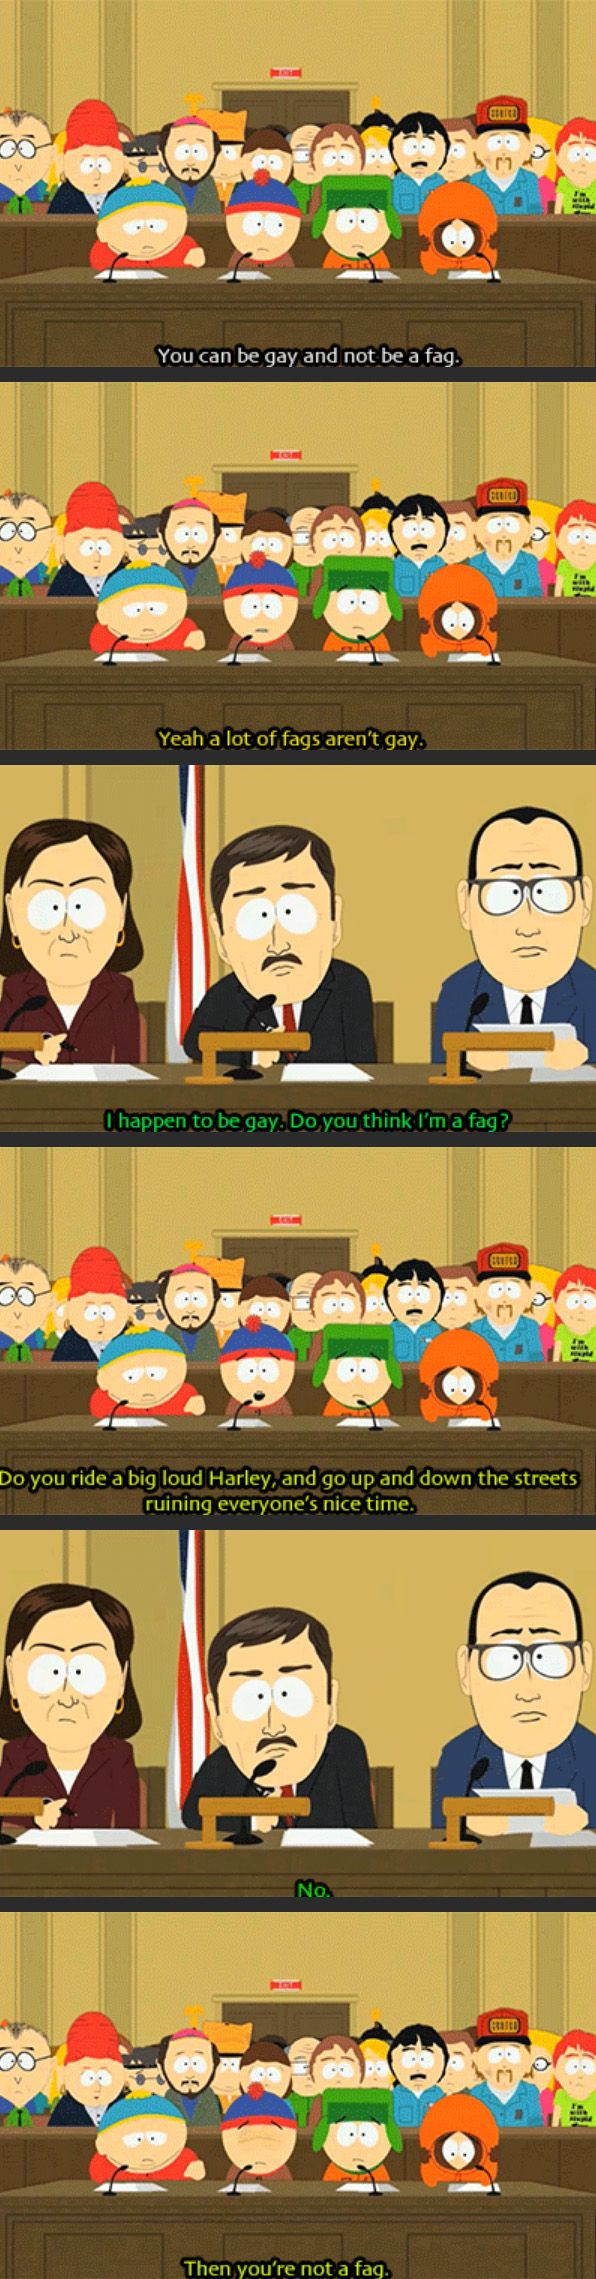 South Park making sense... and I forgot what episode this is, someonw plz tell me!